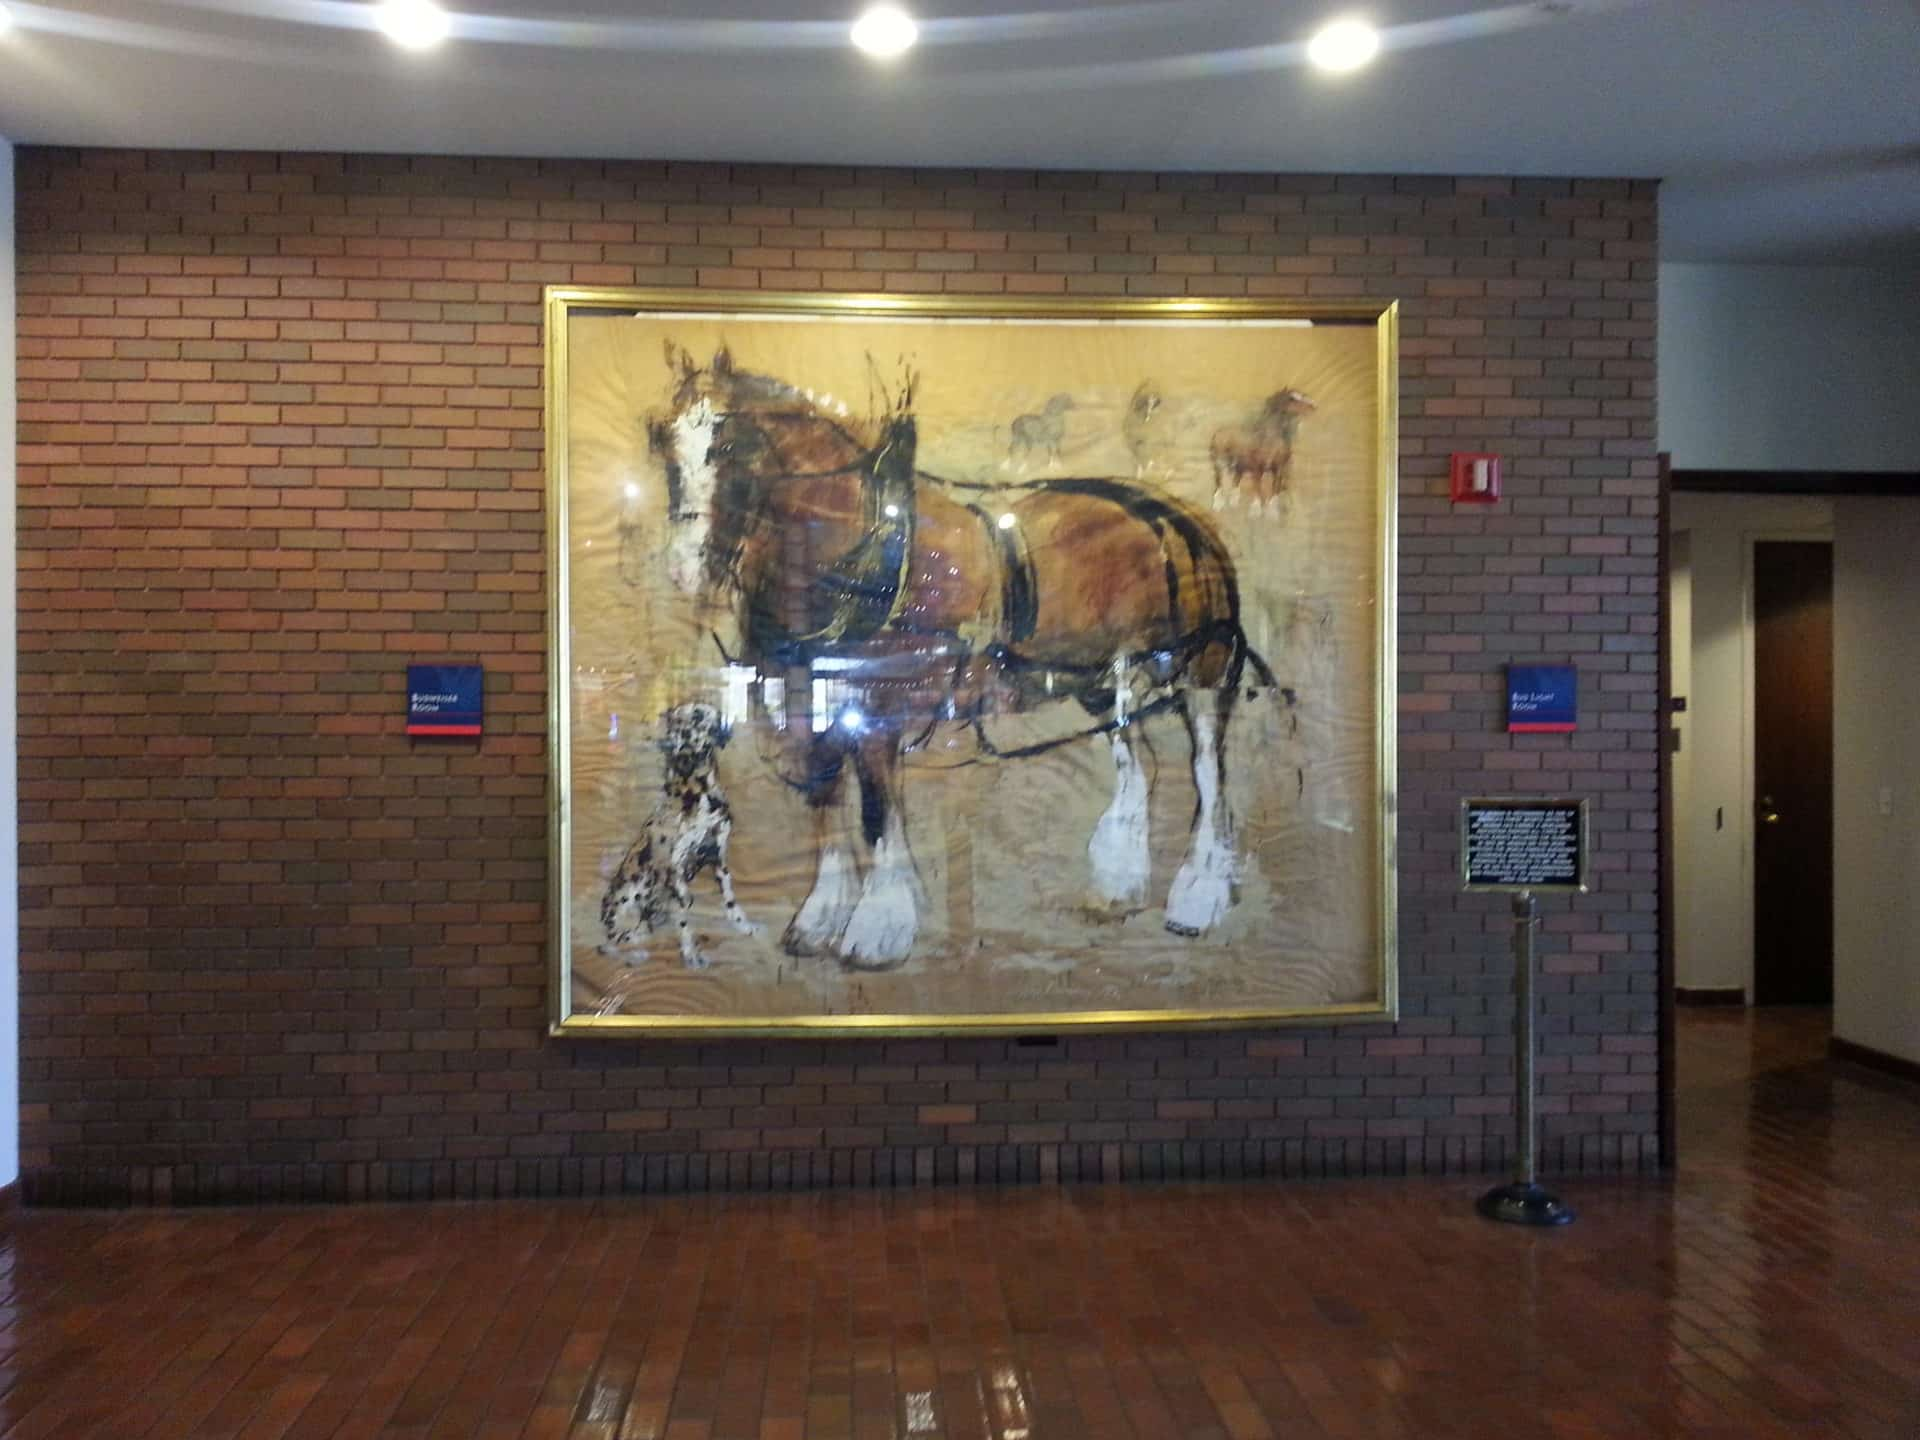 Budweiser Brewery Tour, St. Louis, MO - Clydesdale photo